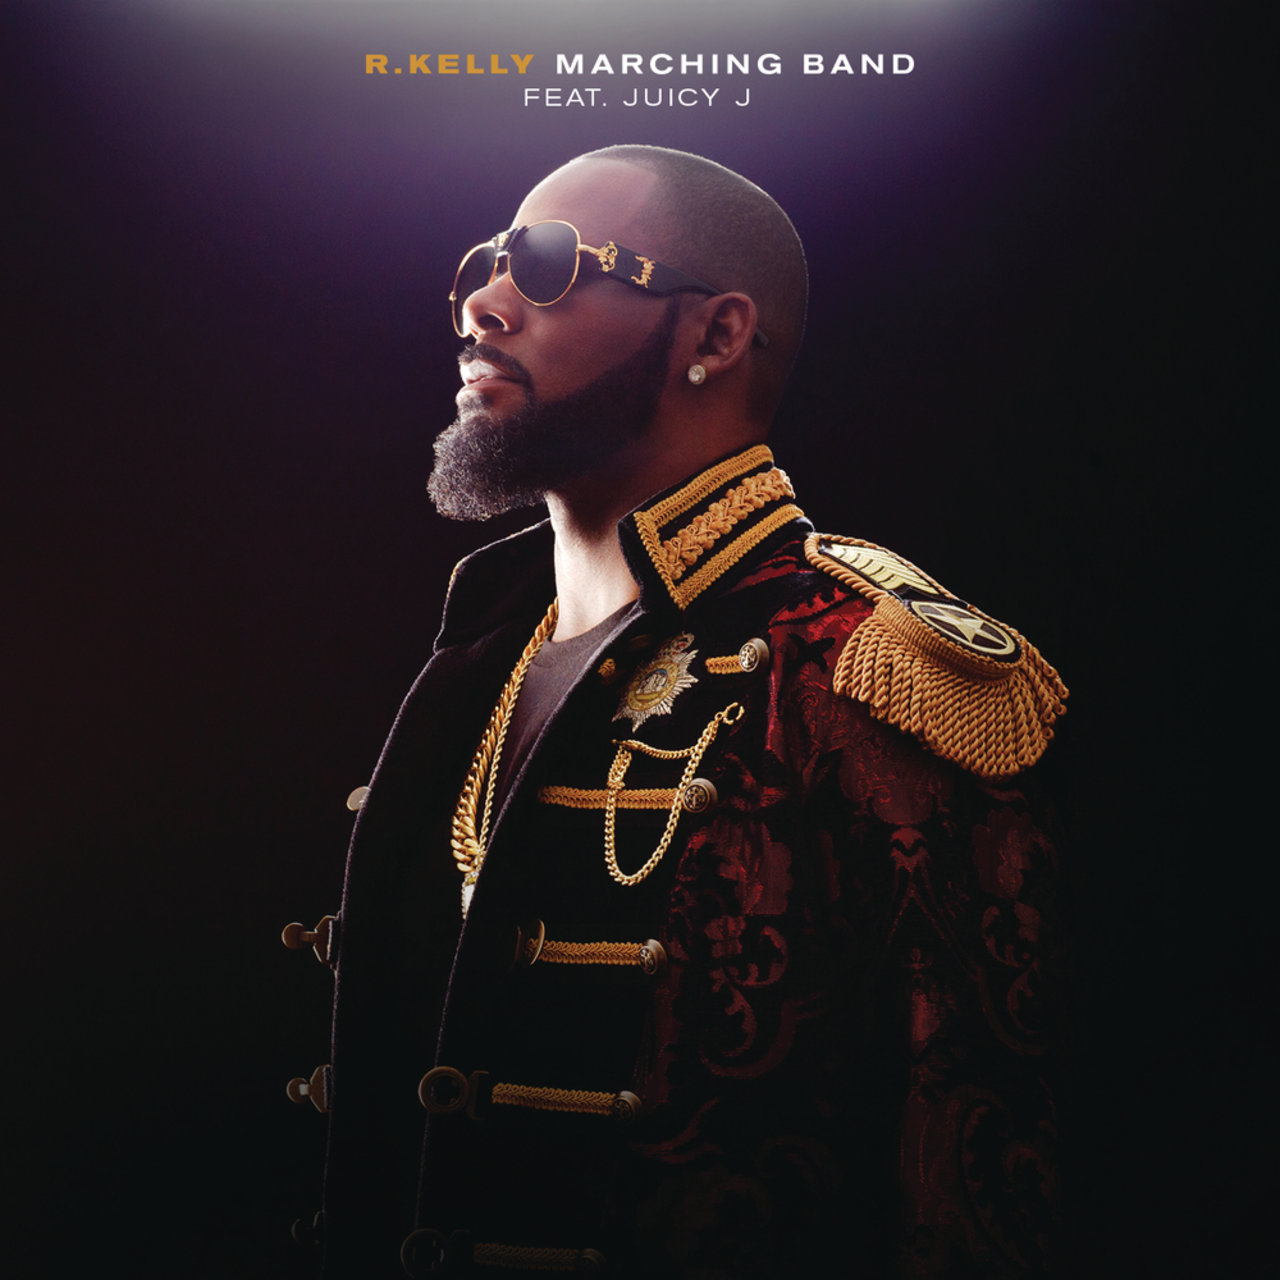 R. Kelly - Marching Band (ft. Juicy J)